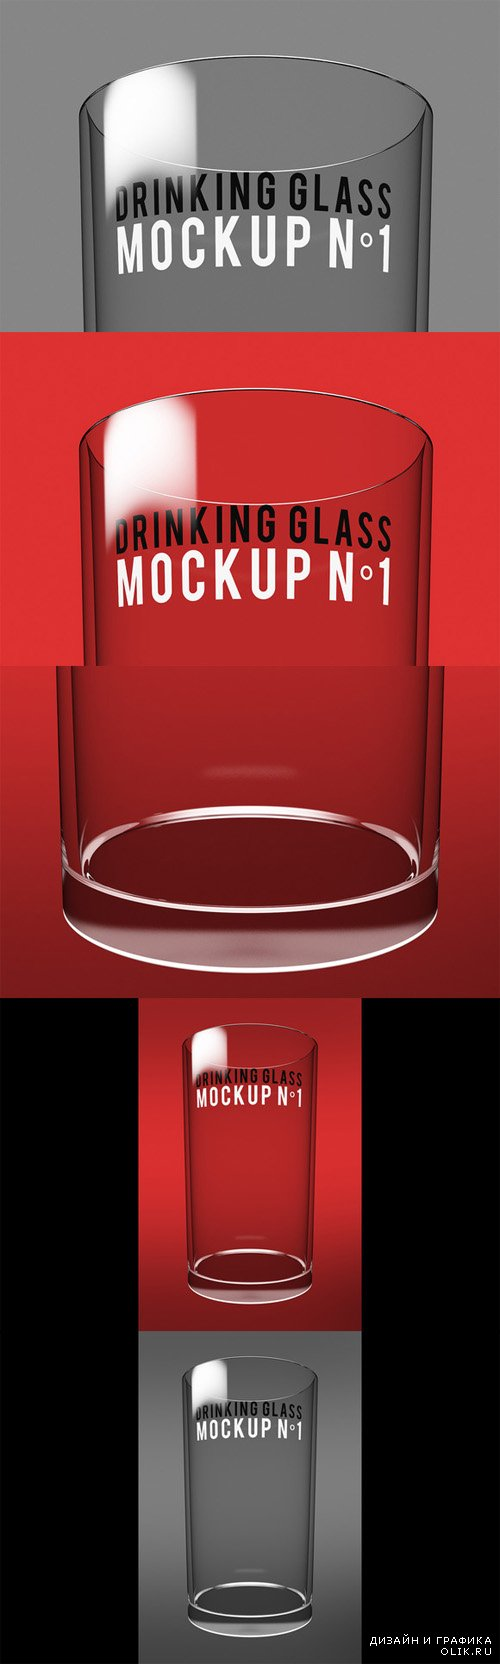 Drinking Glass Mockup N 1